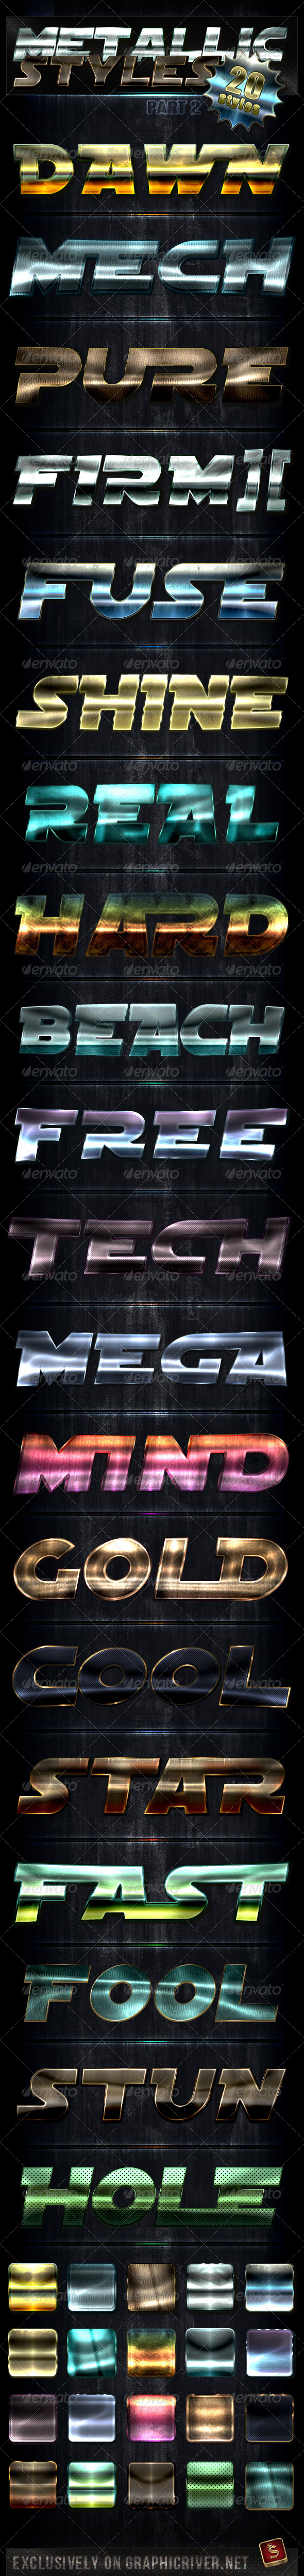 Unique Metallic Styles - Part 2 - Text Effects Styles